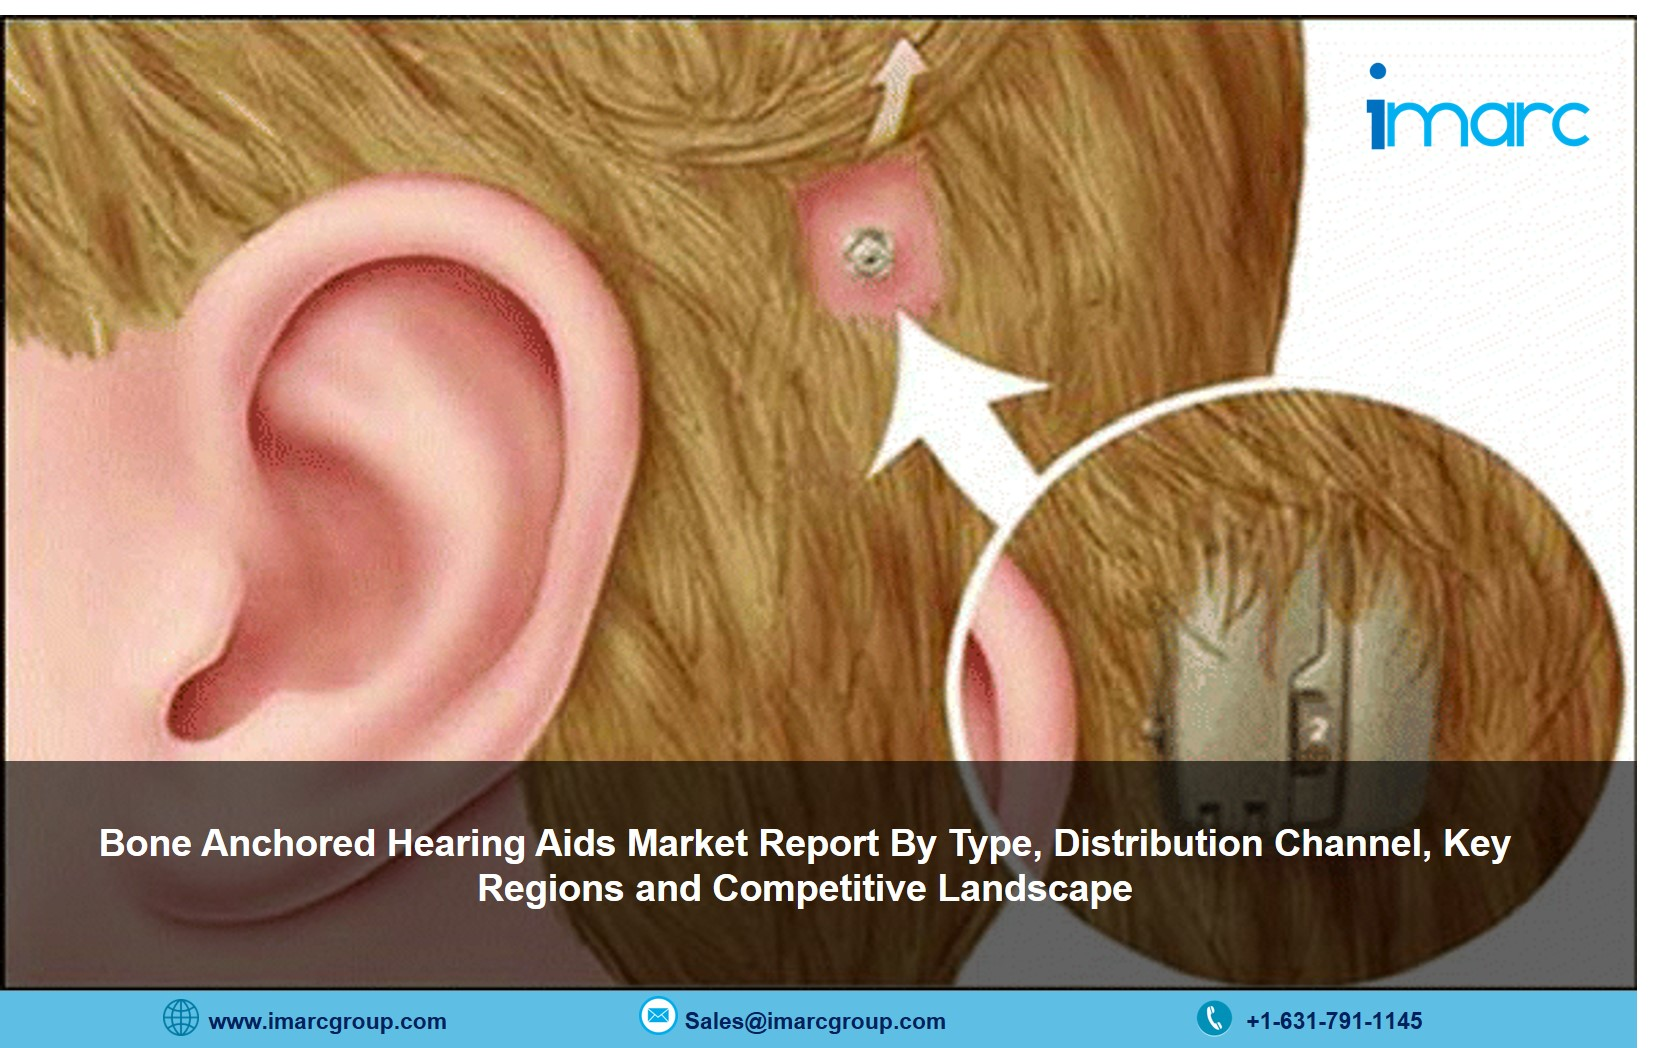 Bone Anchored Hearing Aids Market 2021-26: Size. Share, Price and Industry Trends